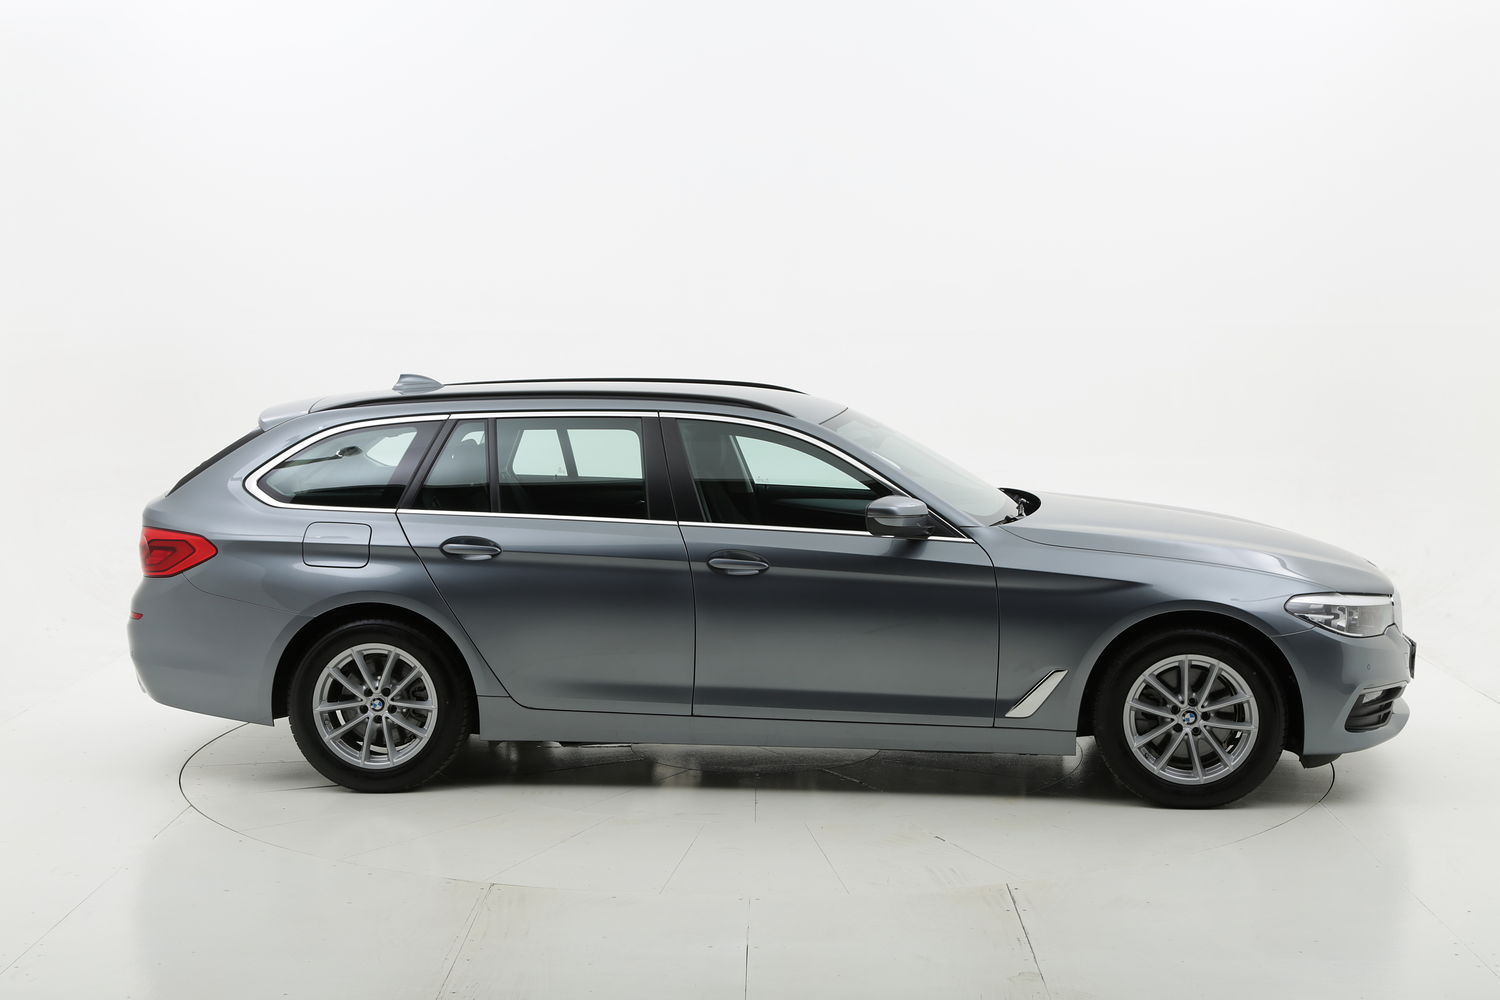 BMW Serie 5 touring business auto km 0 diesel antracite